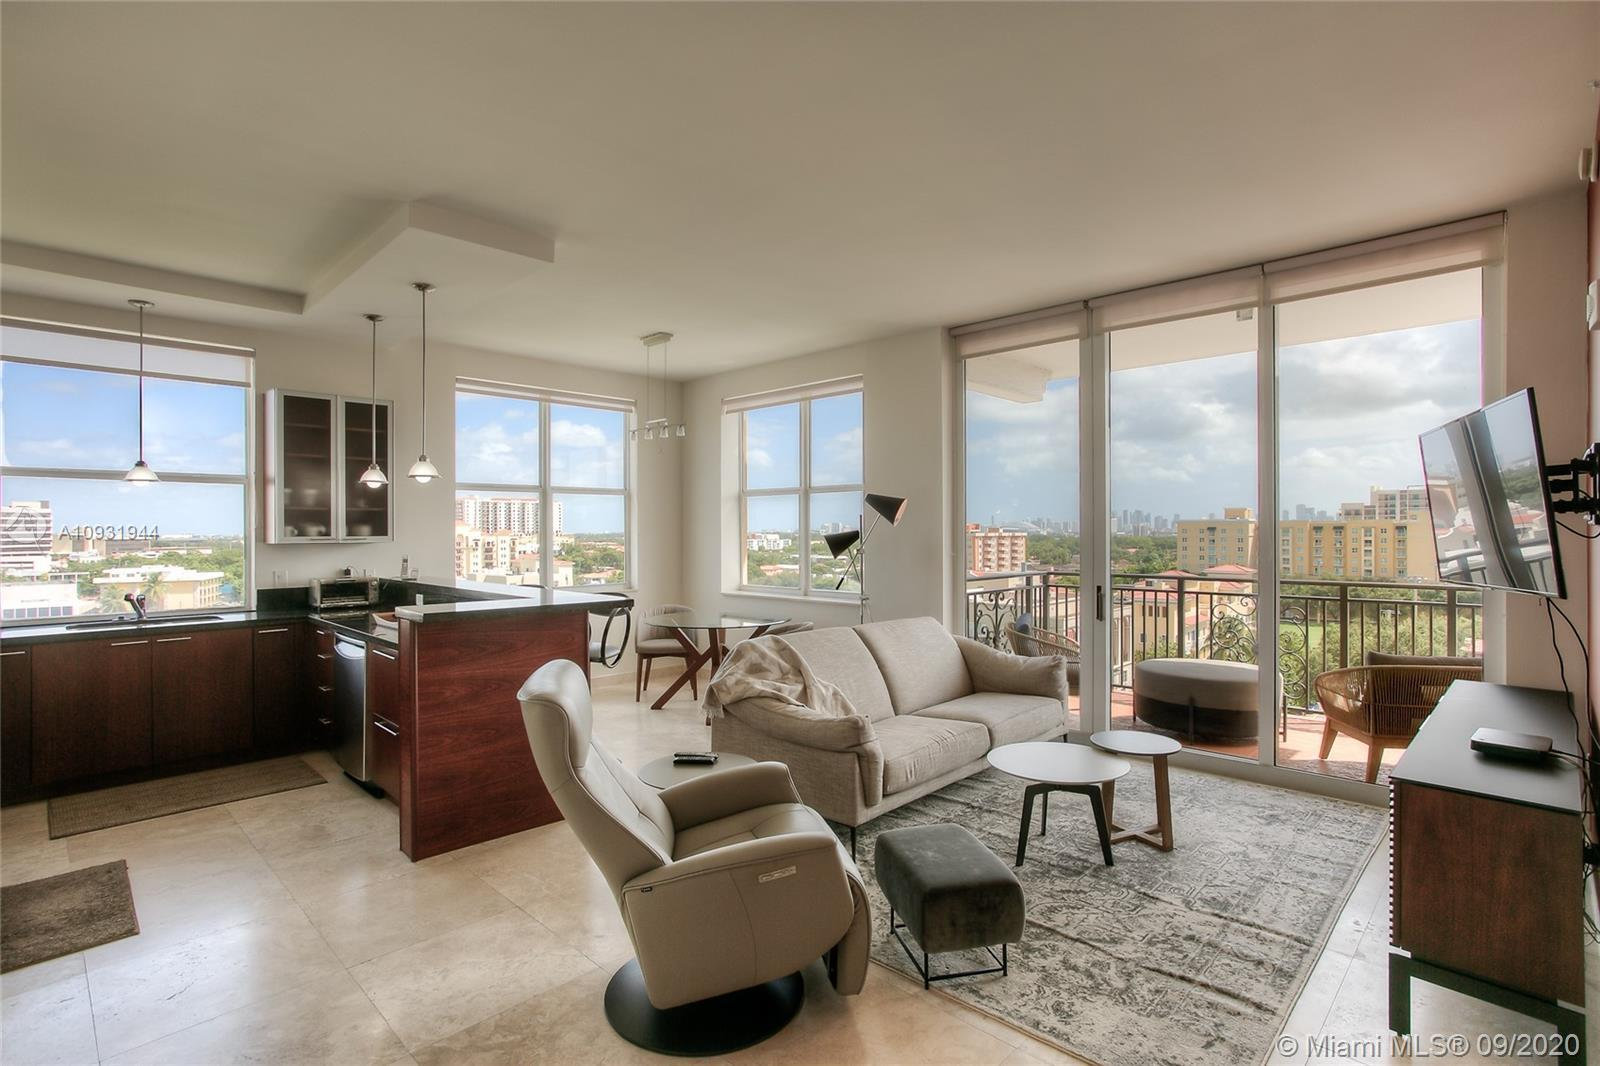 DEAL FELL THROUGH, BACK ON THE MARKET! Amazing views from this corner unit at The Ponce De Leon Con